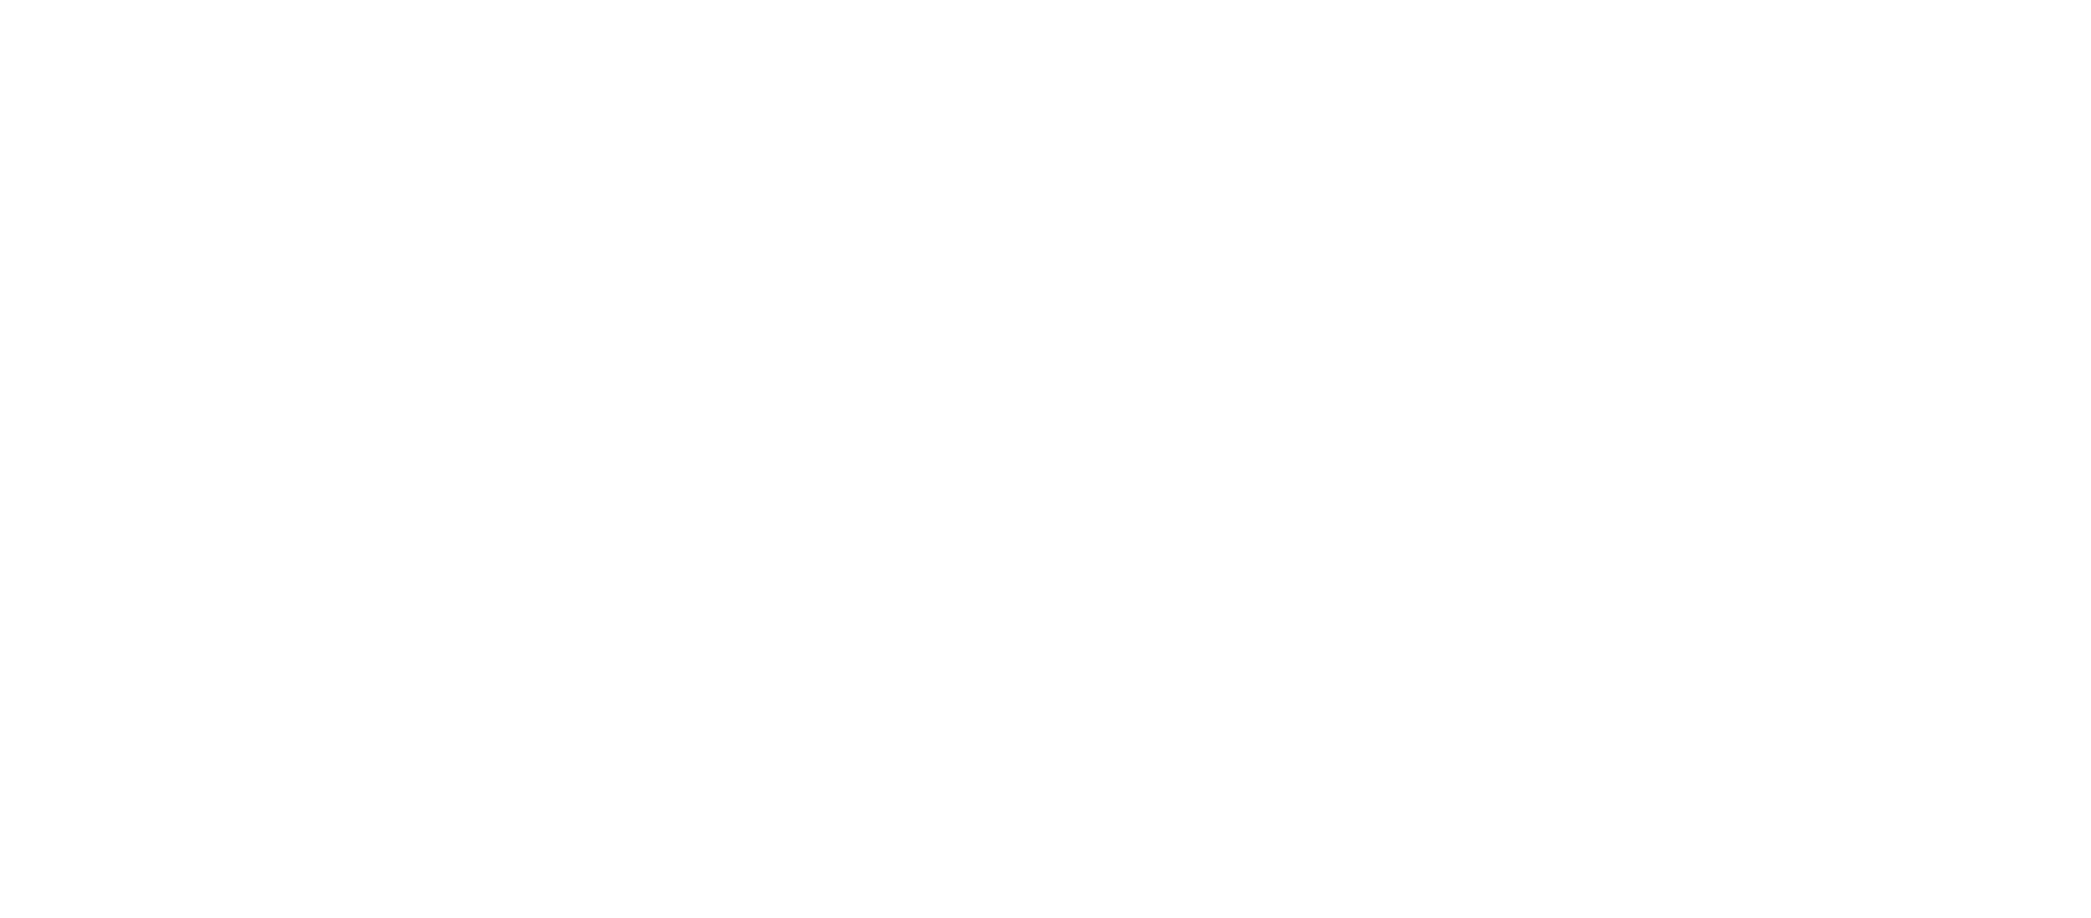 Highland Harvest Feasts